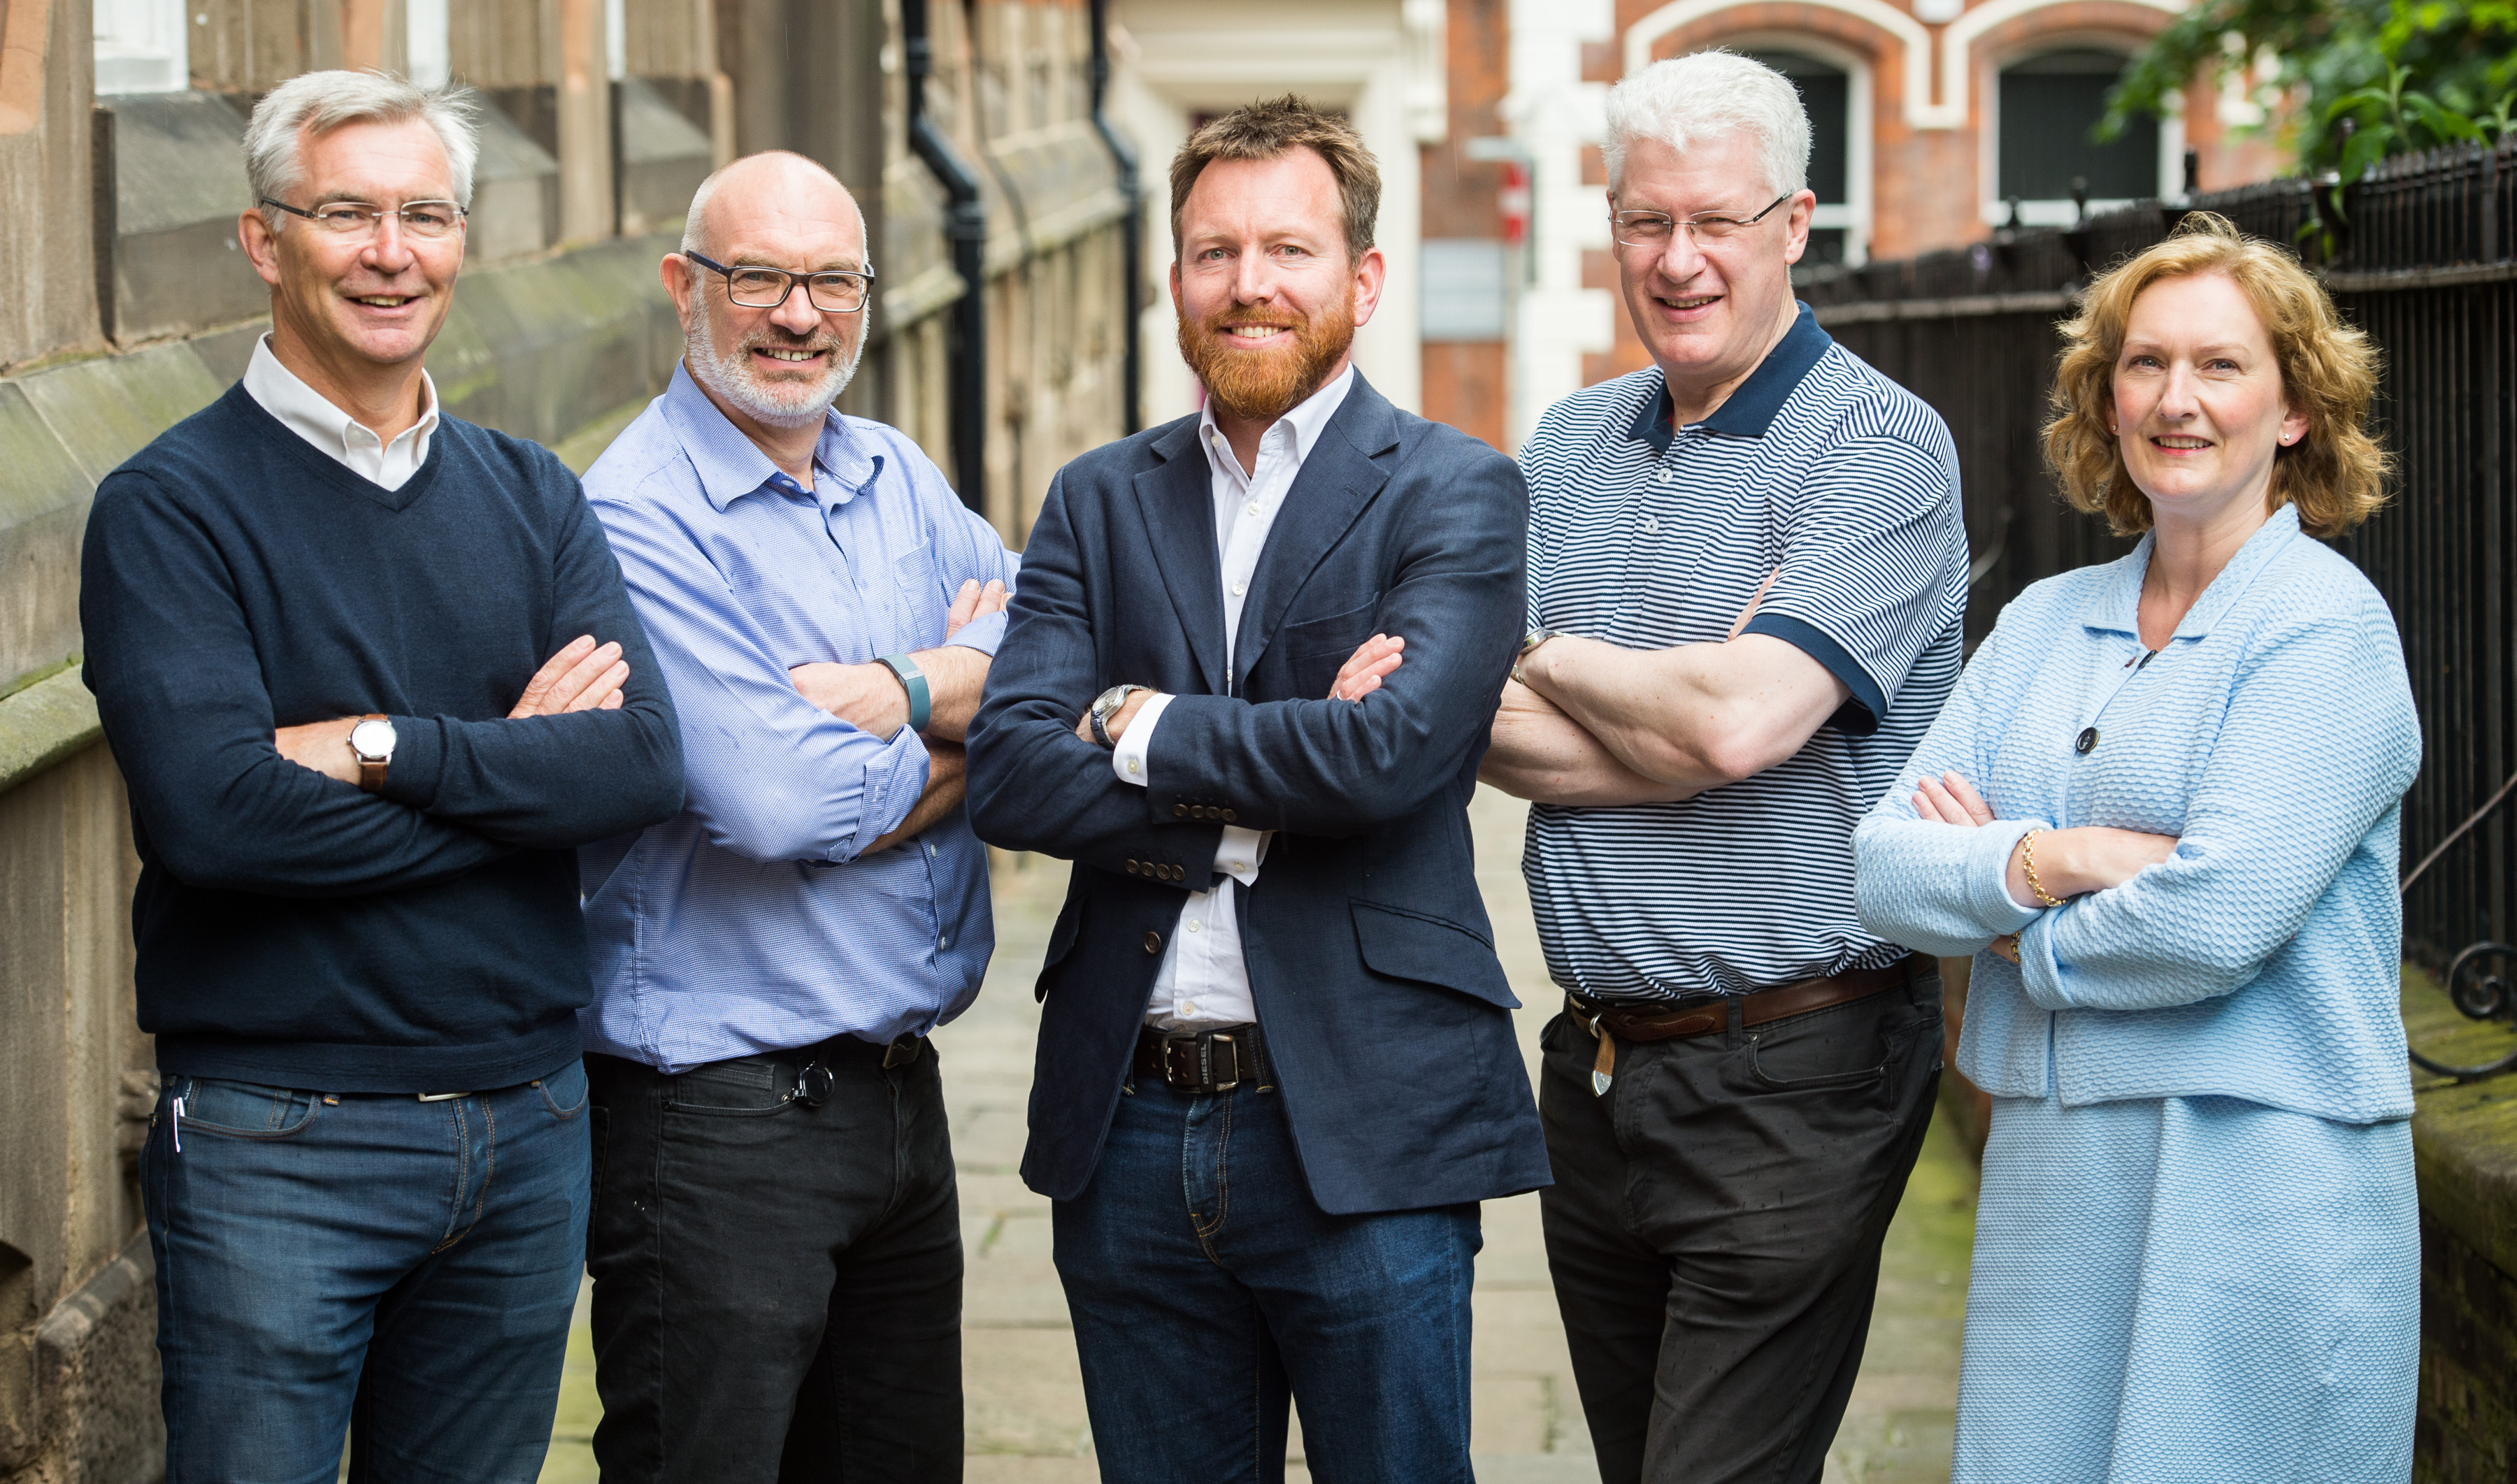 New financial technology offering sees industry heavyweights unite